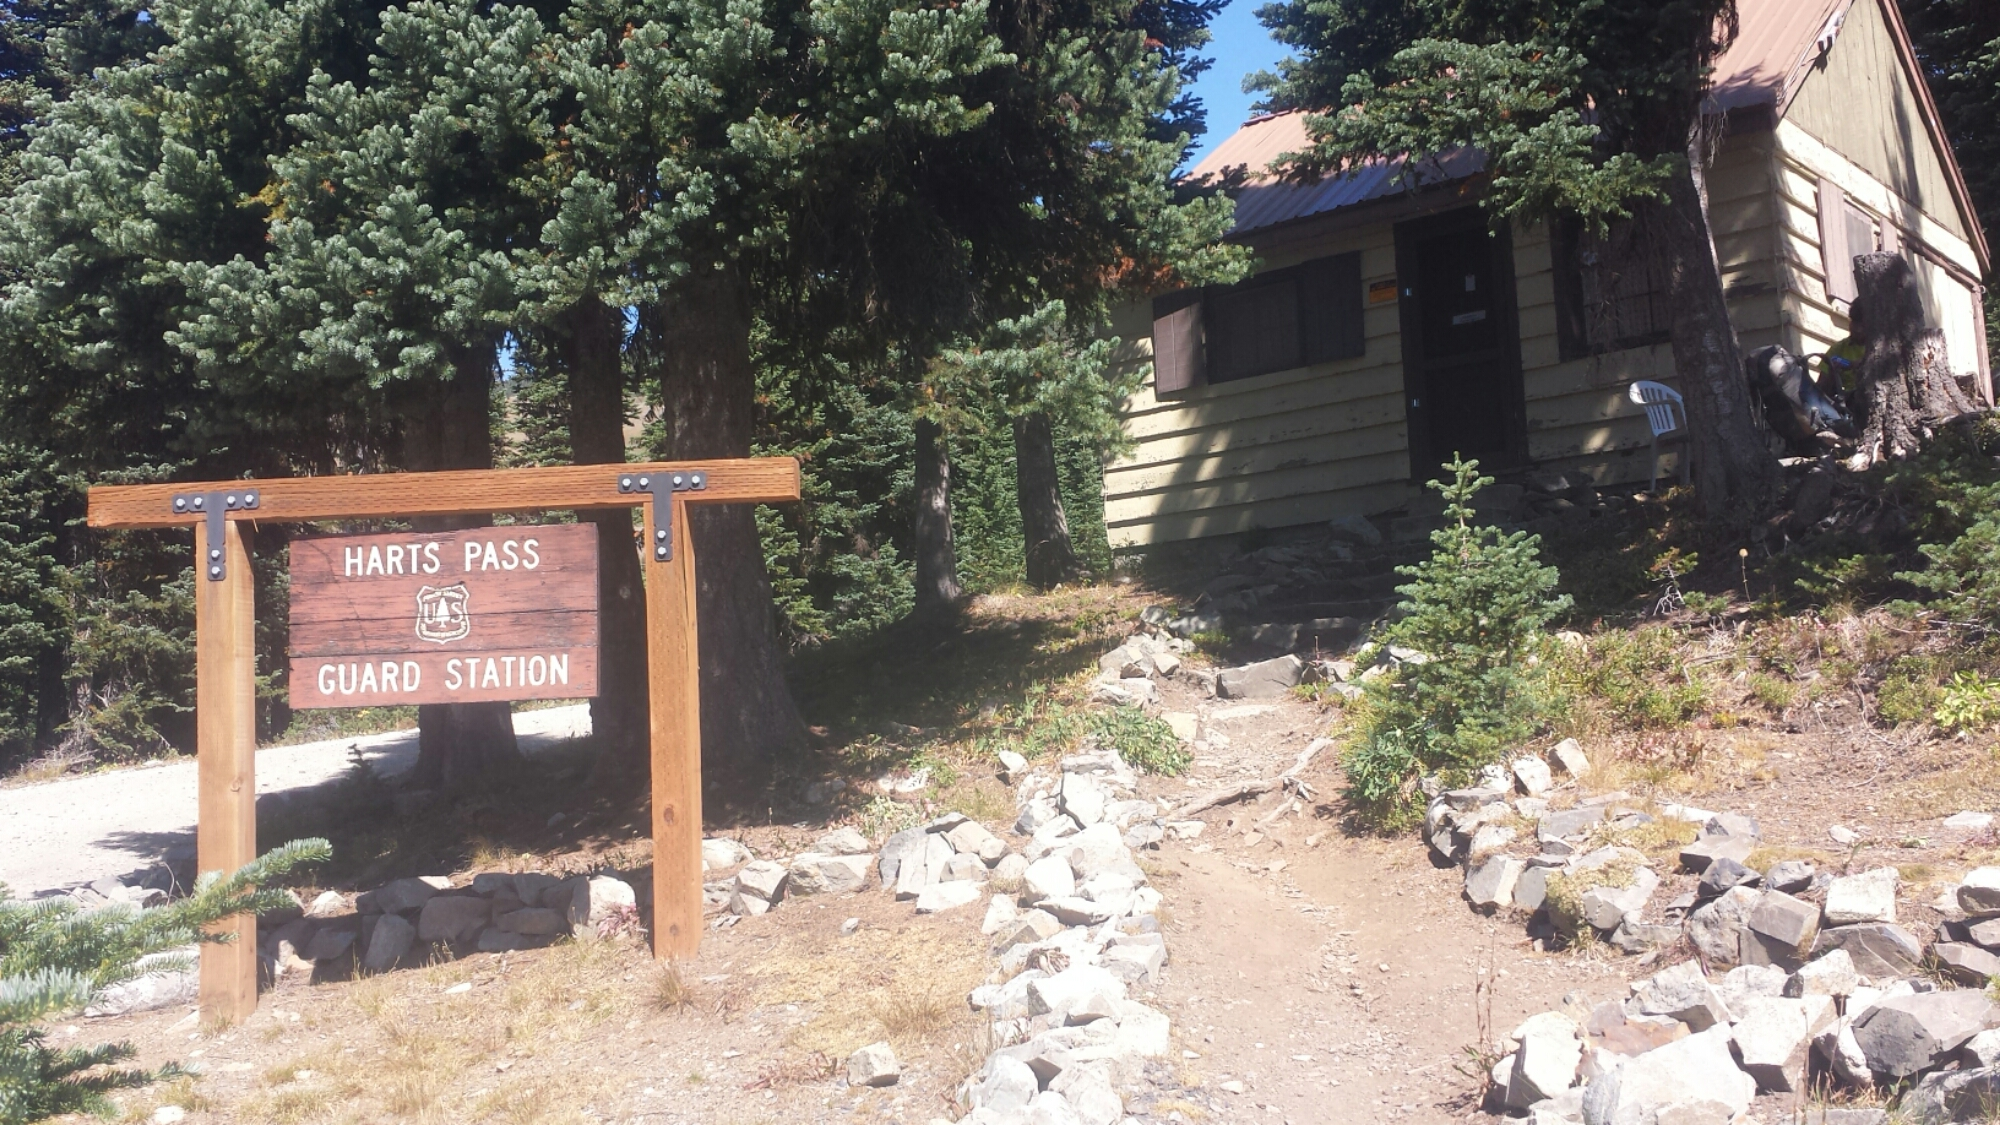 Hart's Pass Ranger Station